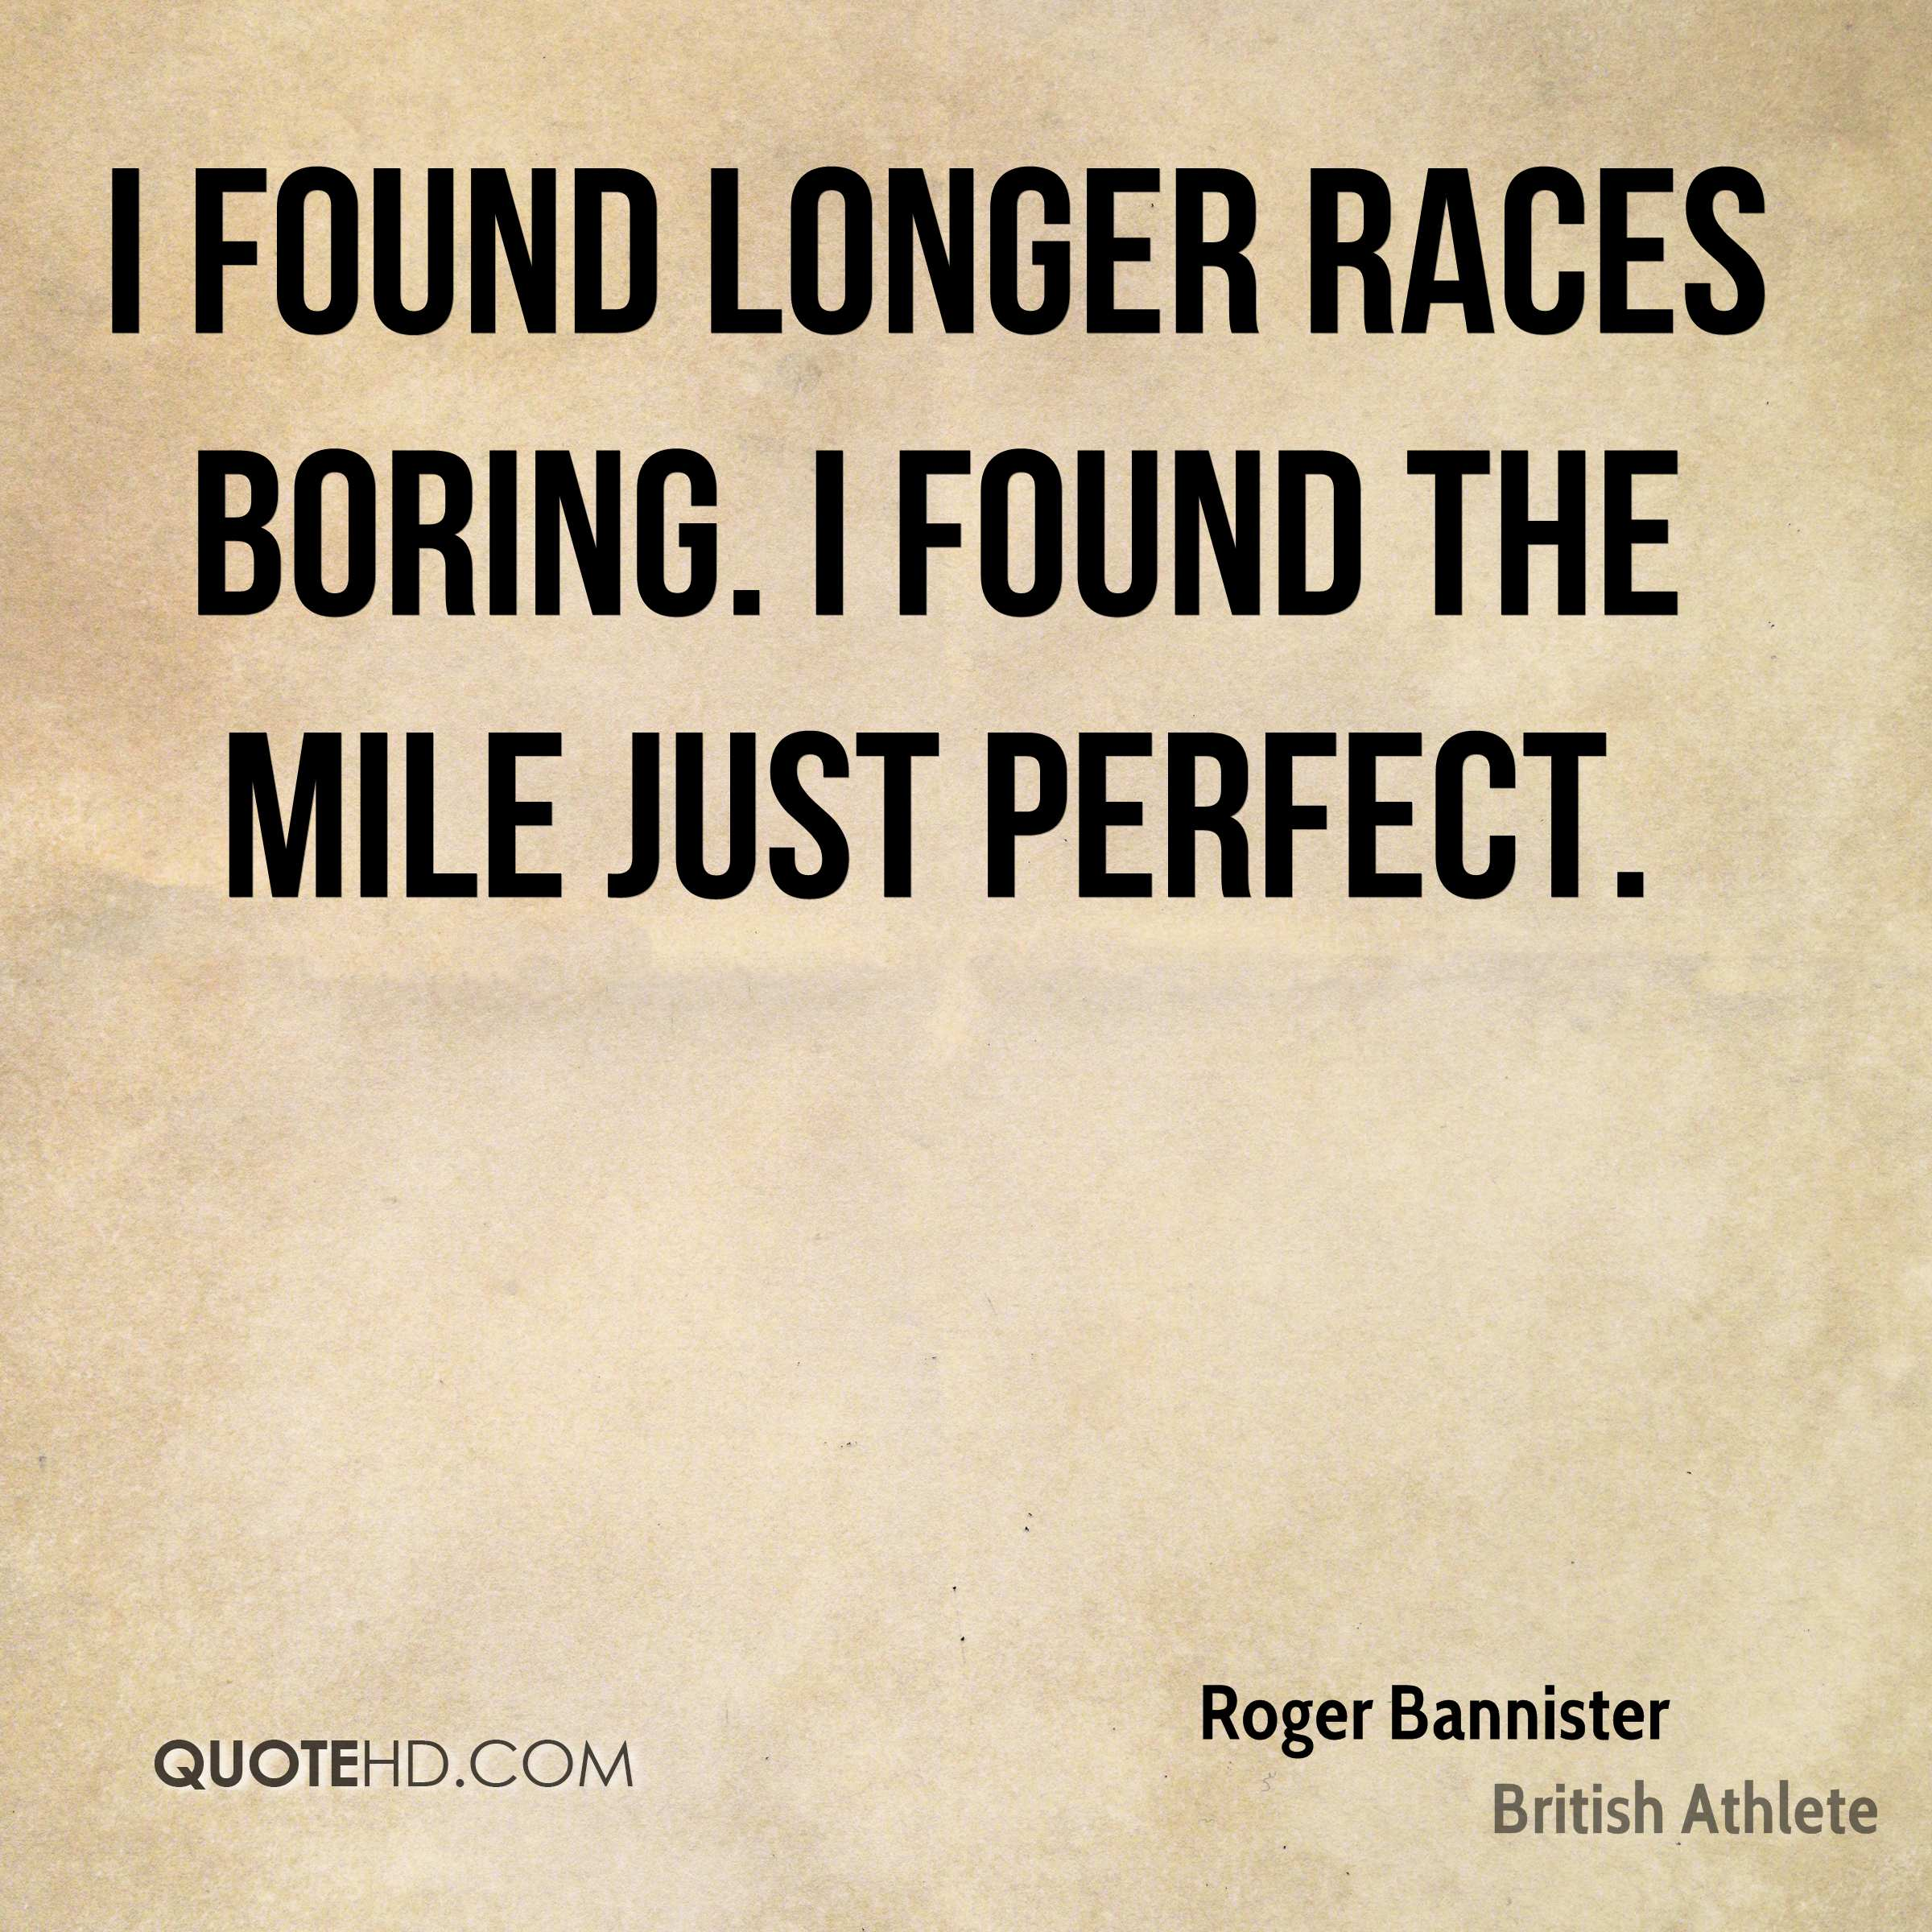 I found longer races boring. I found the mile just perfect.